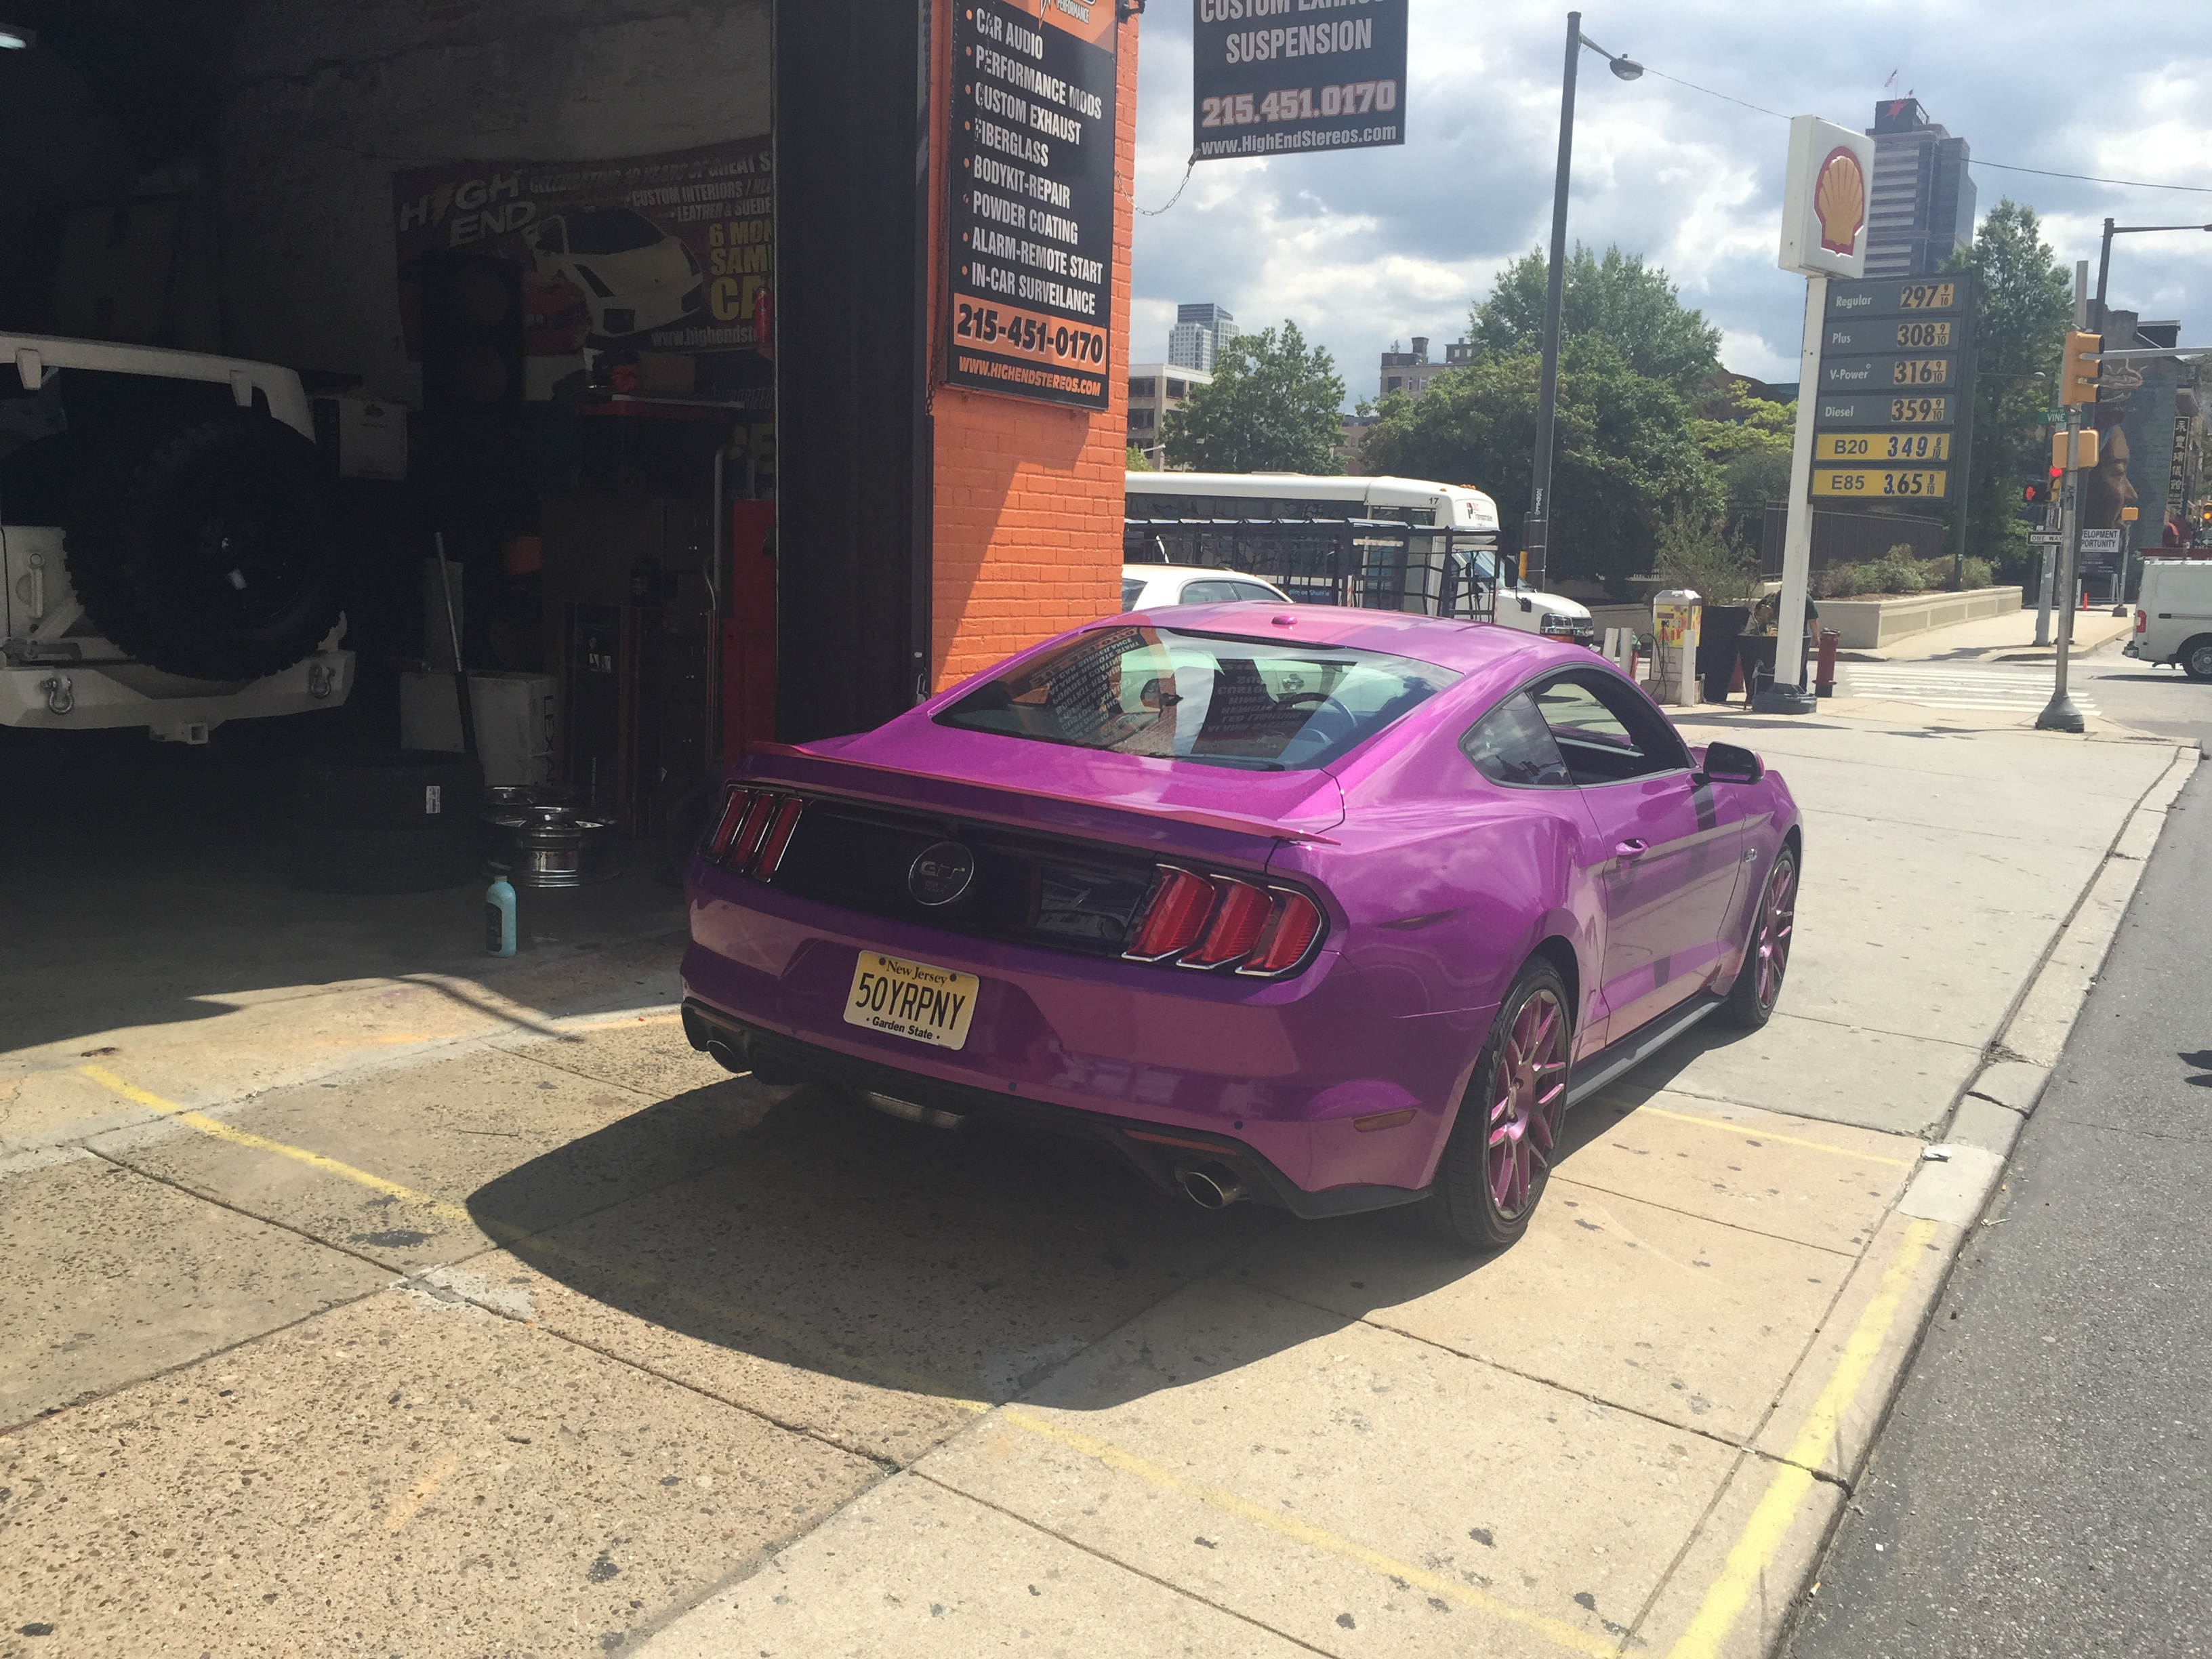 Hot 2015 Mustang Hooked Up In Philadelphia High End Car Stereos Remote Starter Brought To You By Highend Stereo